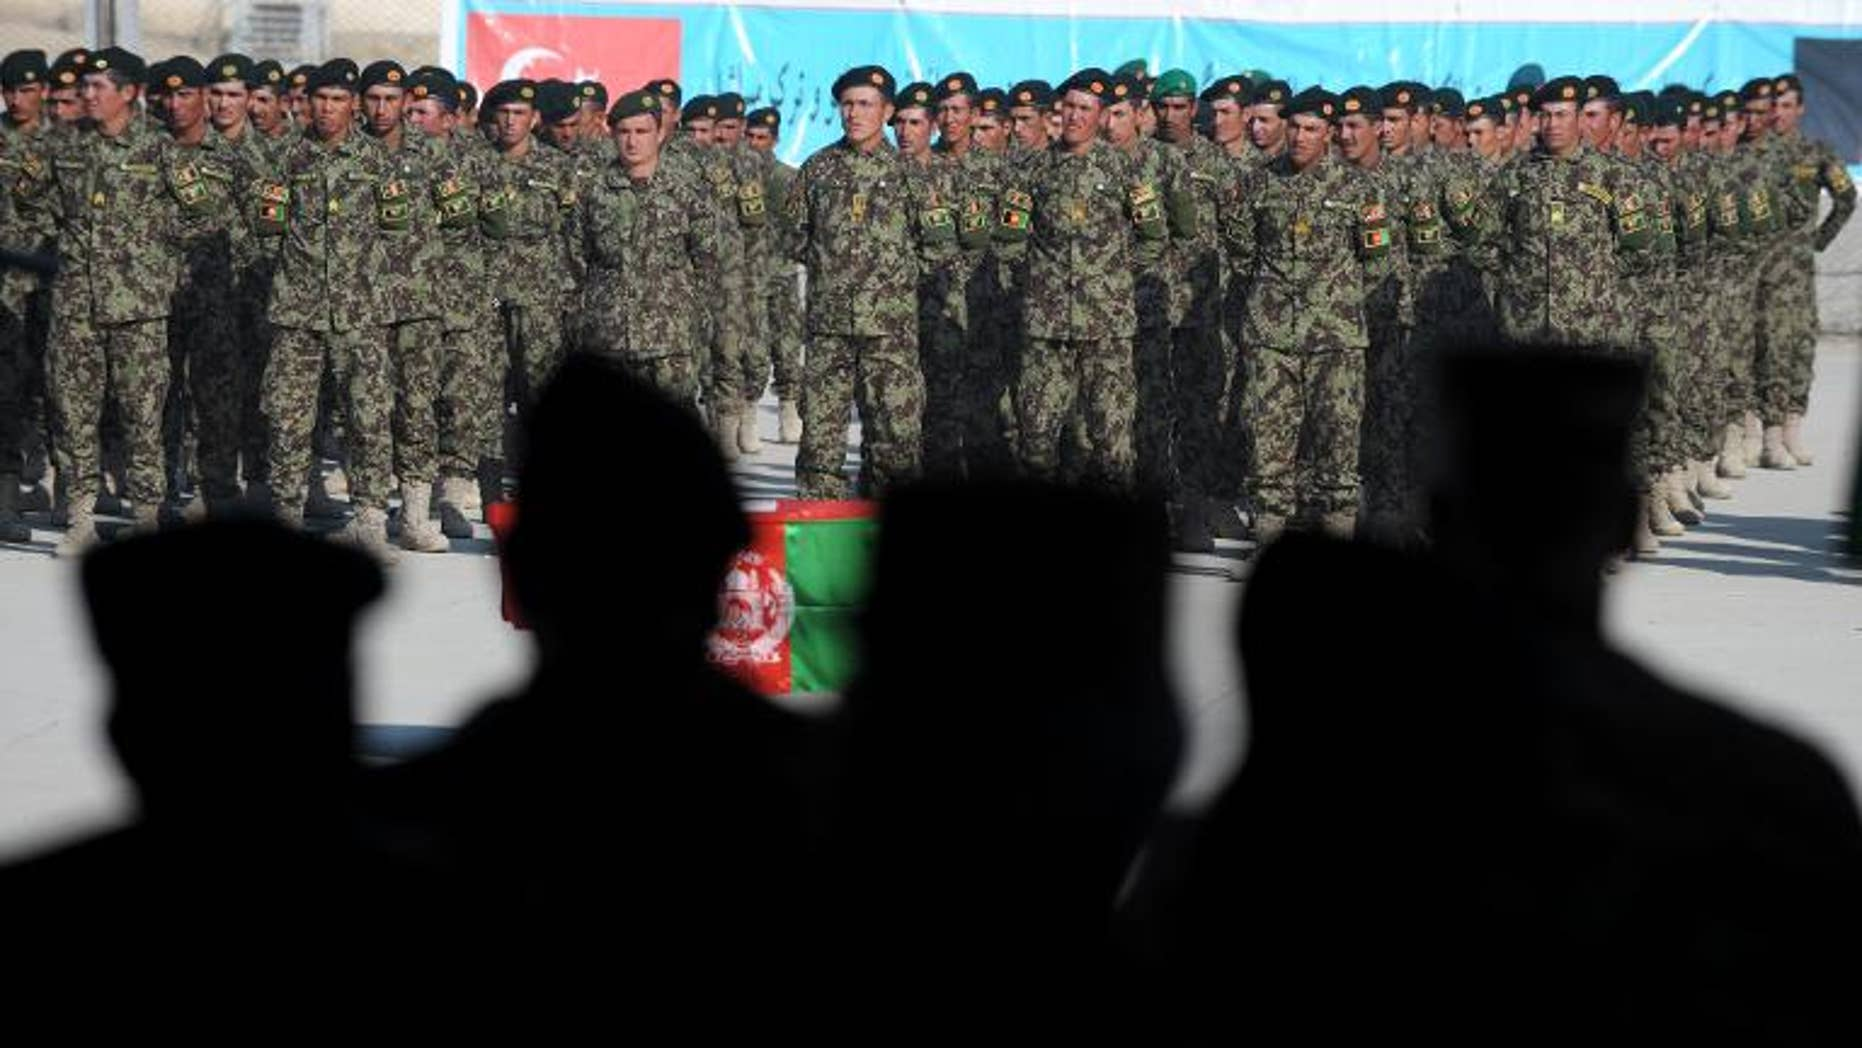 Afghan and International Security Assistance Force (ISAF) officers watch Afghan National Army (ANA) cadets during a graduation ceremony in Kabul on December 15, 2011.